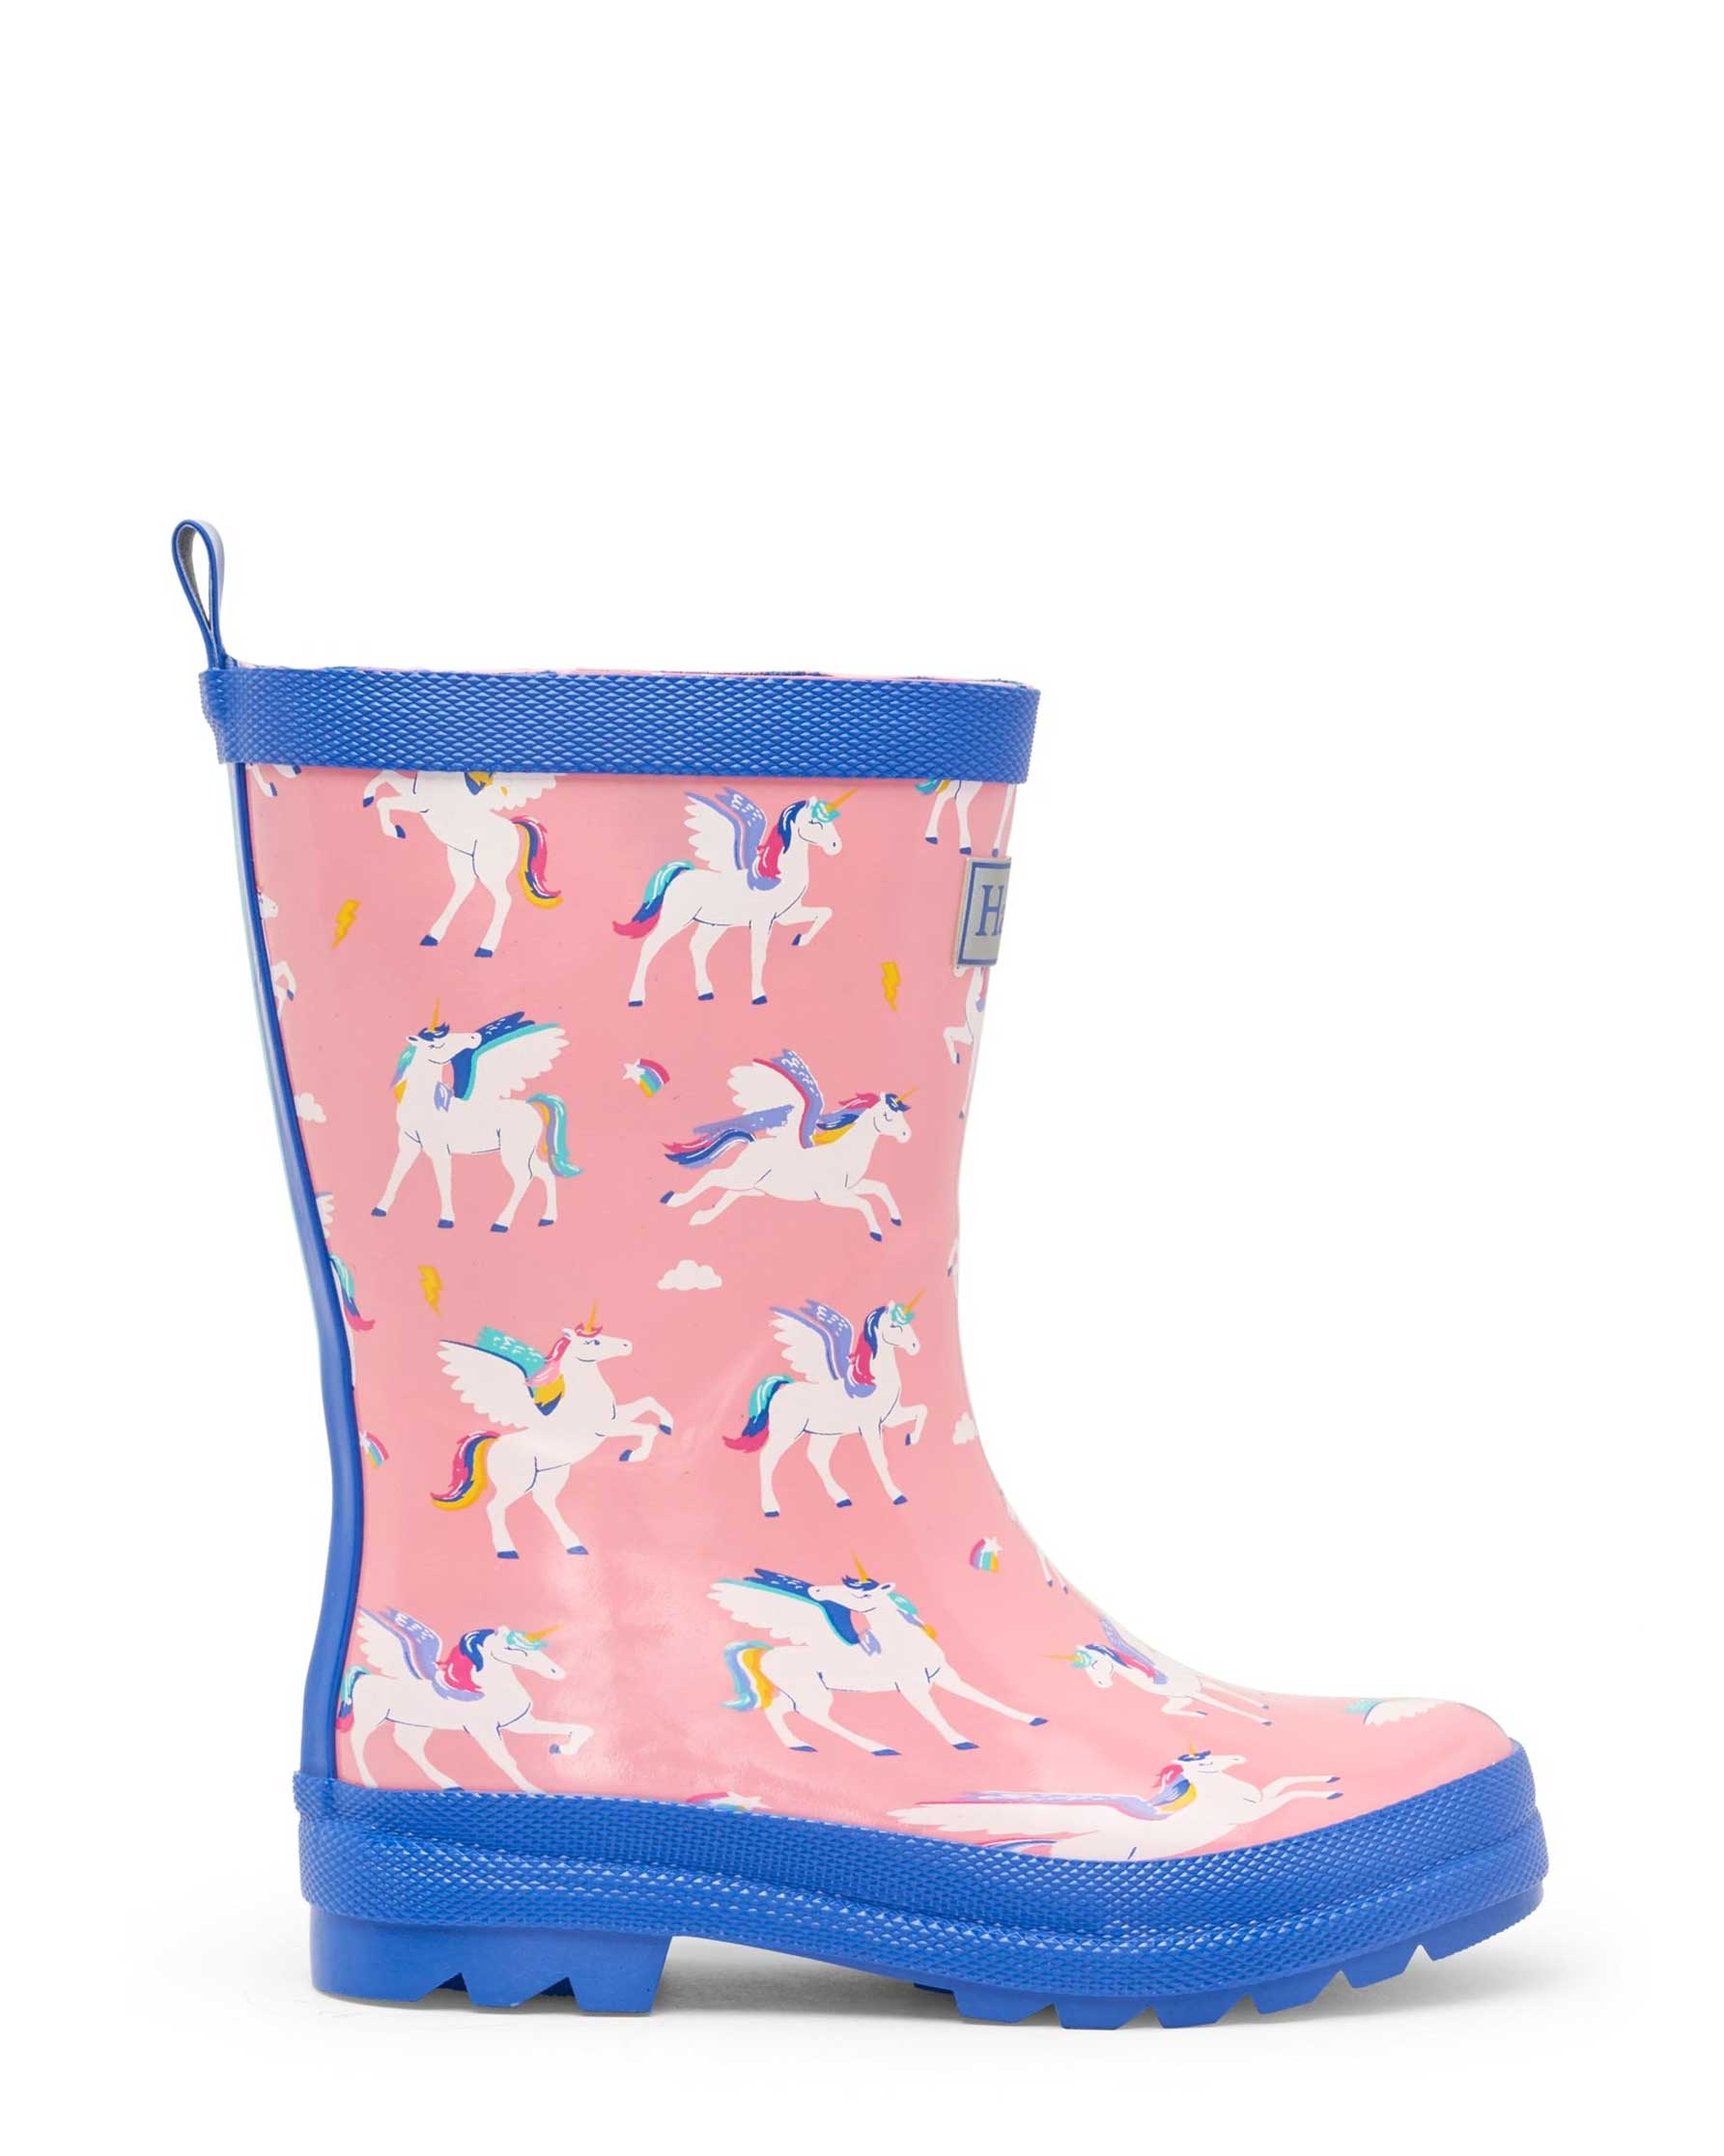 Magical Pegasus Shiny Gumboots